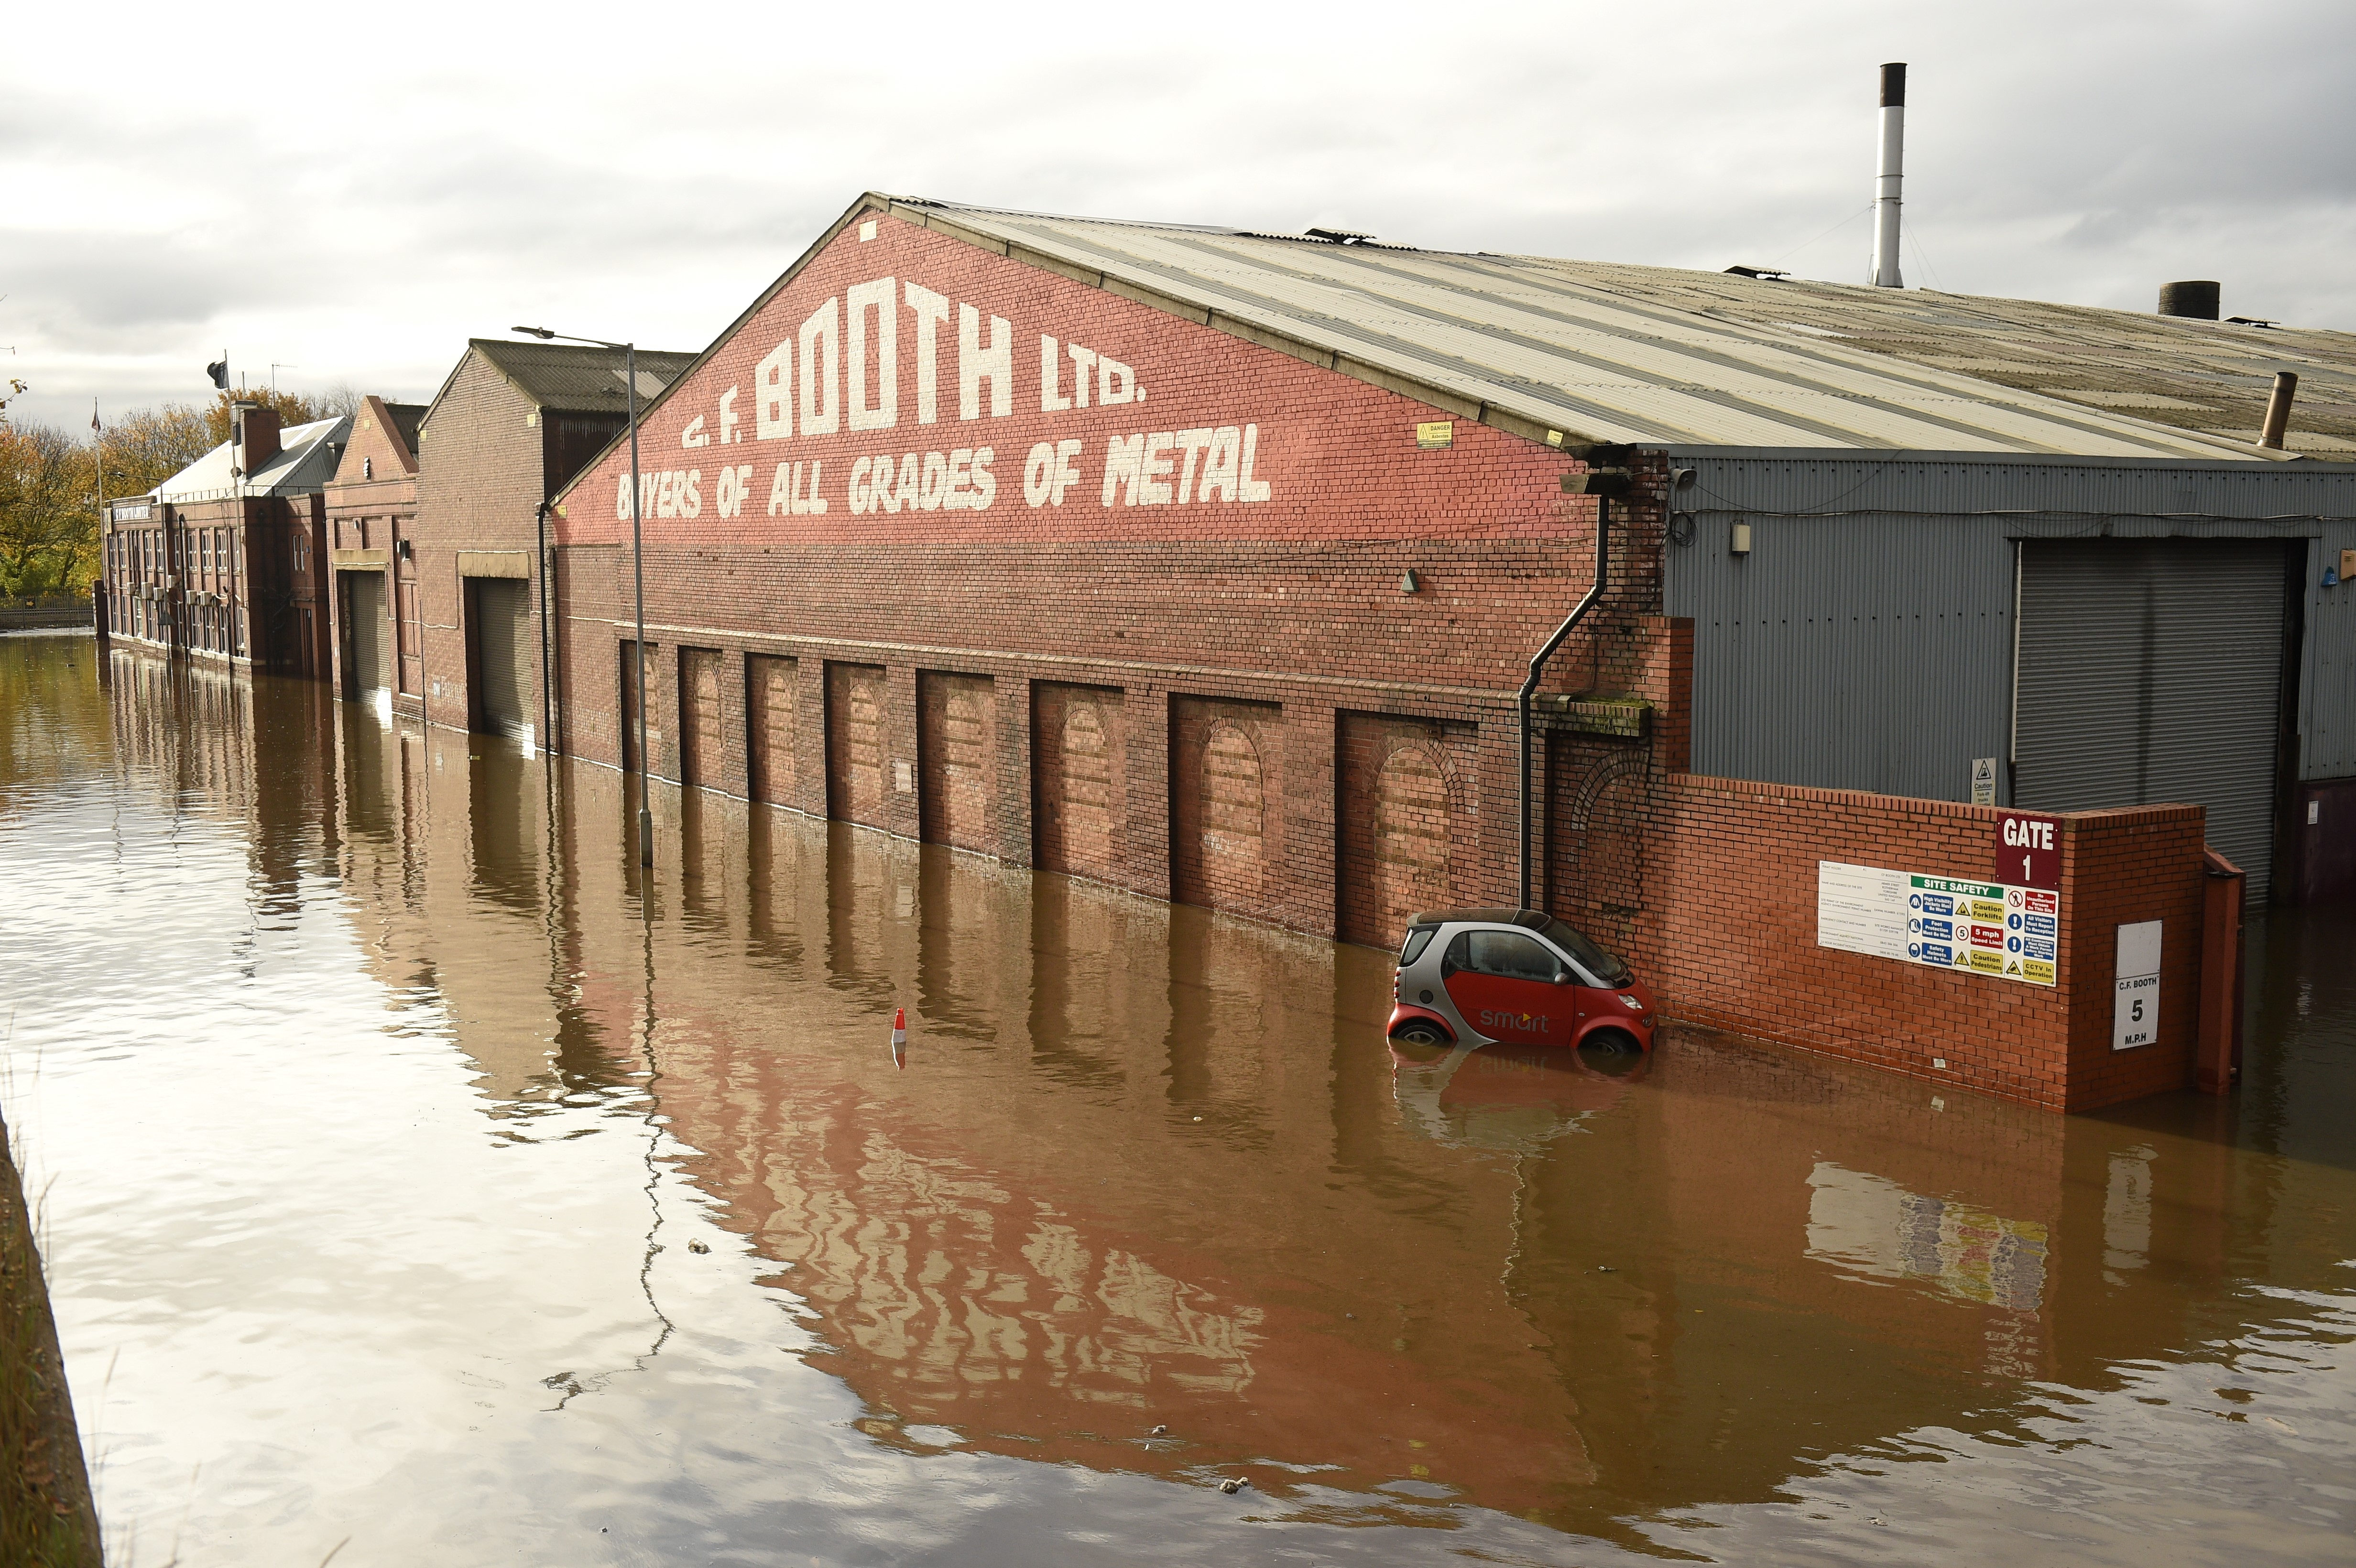 An abandoned car is pictured in flood water surrounding buildings in Rotherham, following flash flooding.